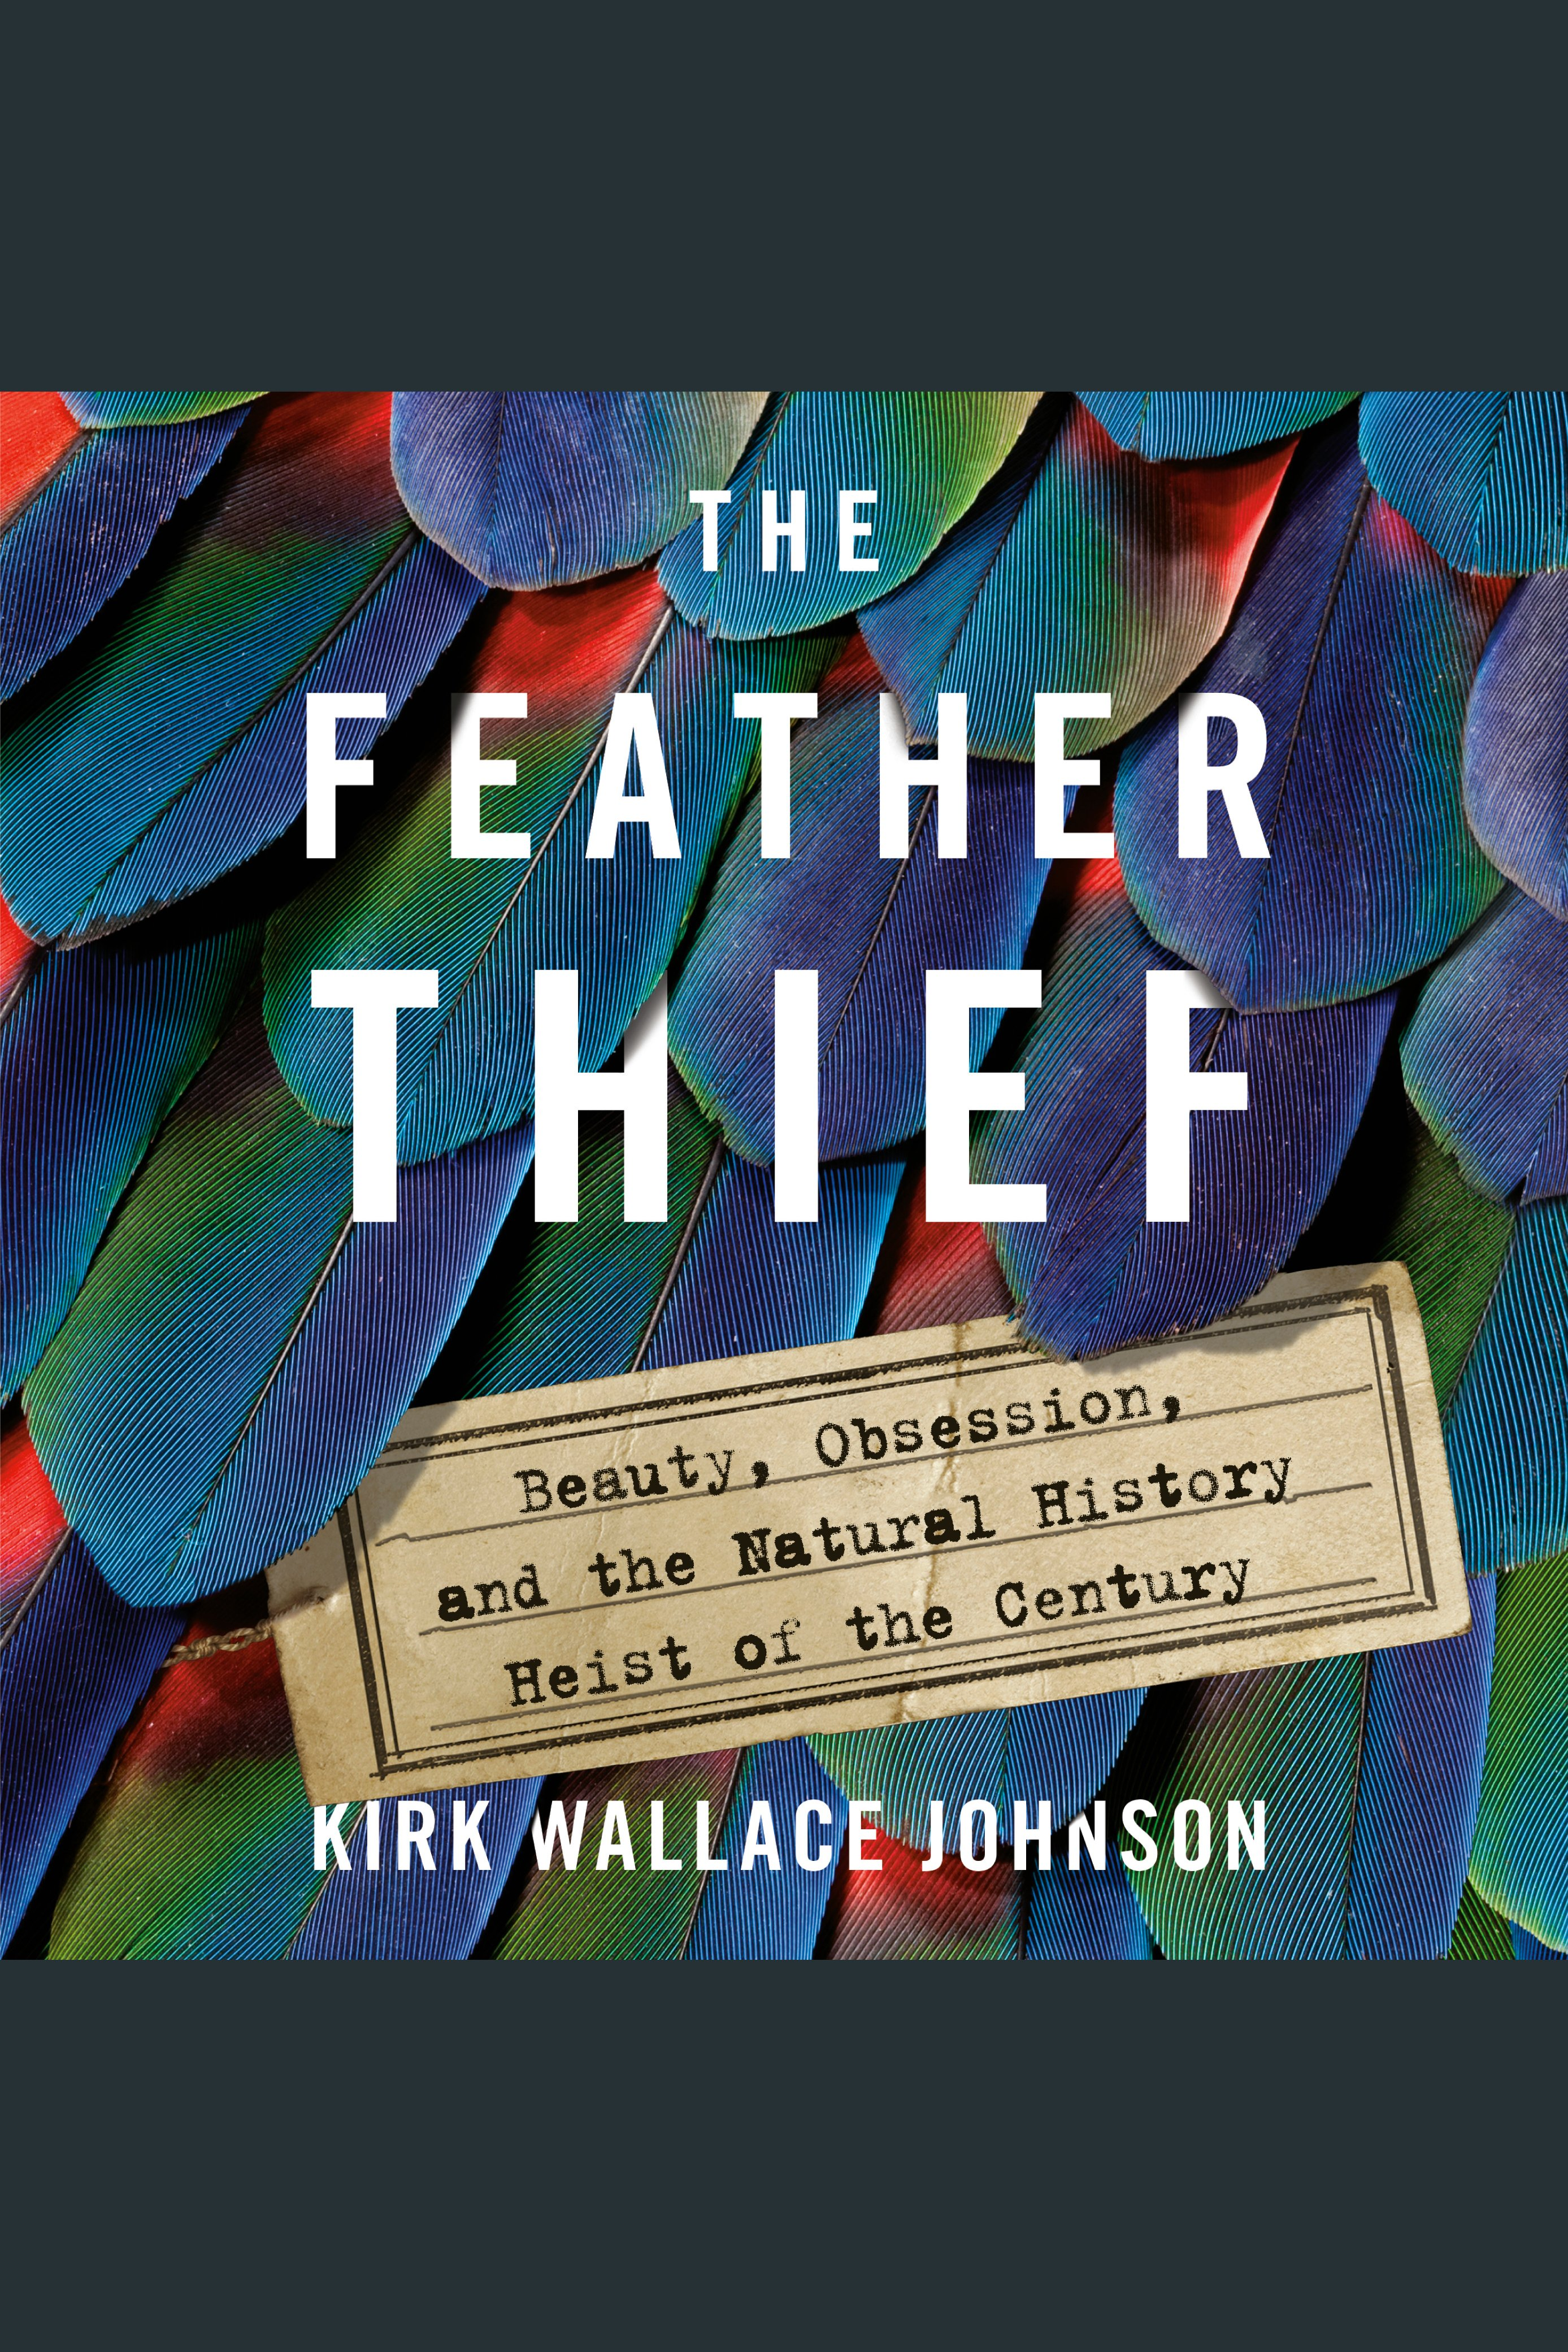 Feather Thief, The Beauty, Obsession, and the Natural History Heist of the Century